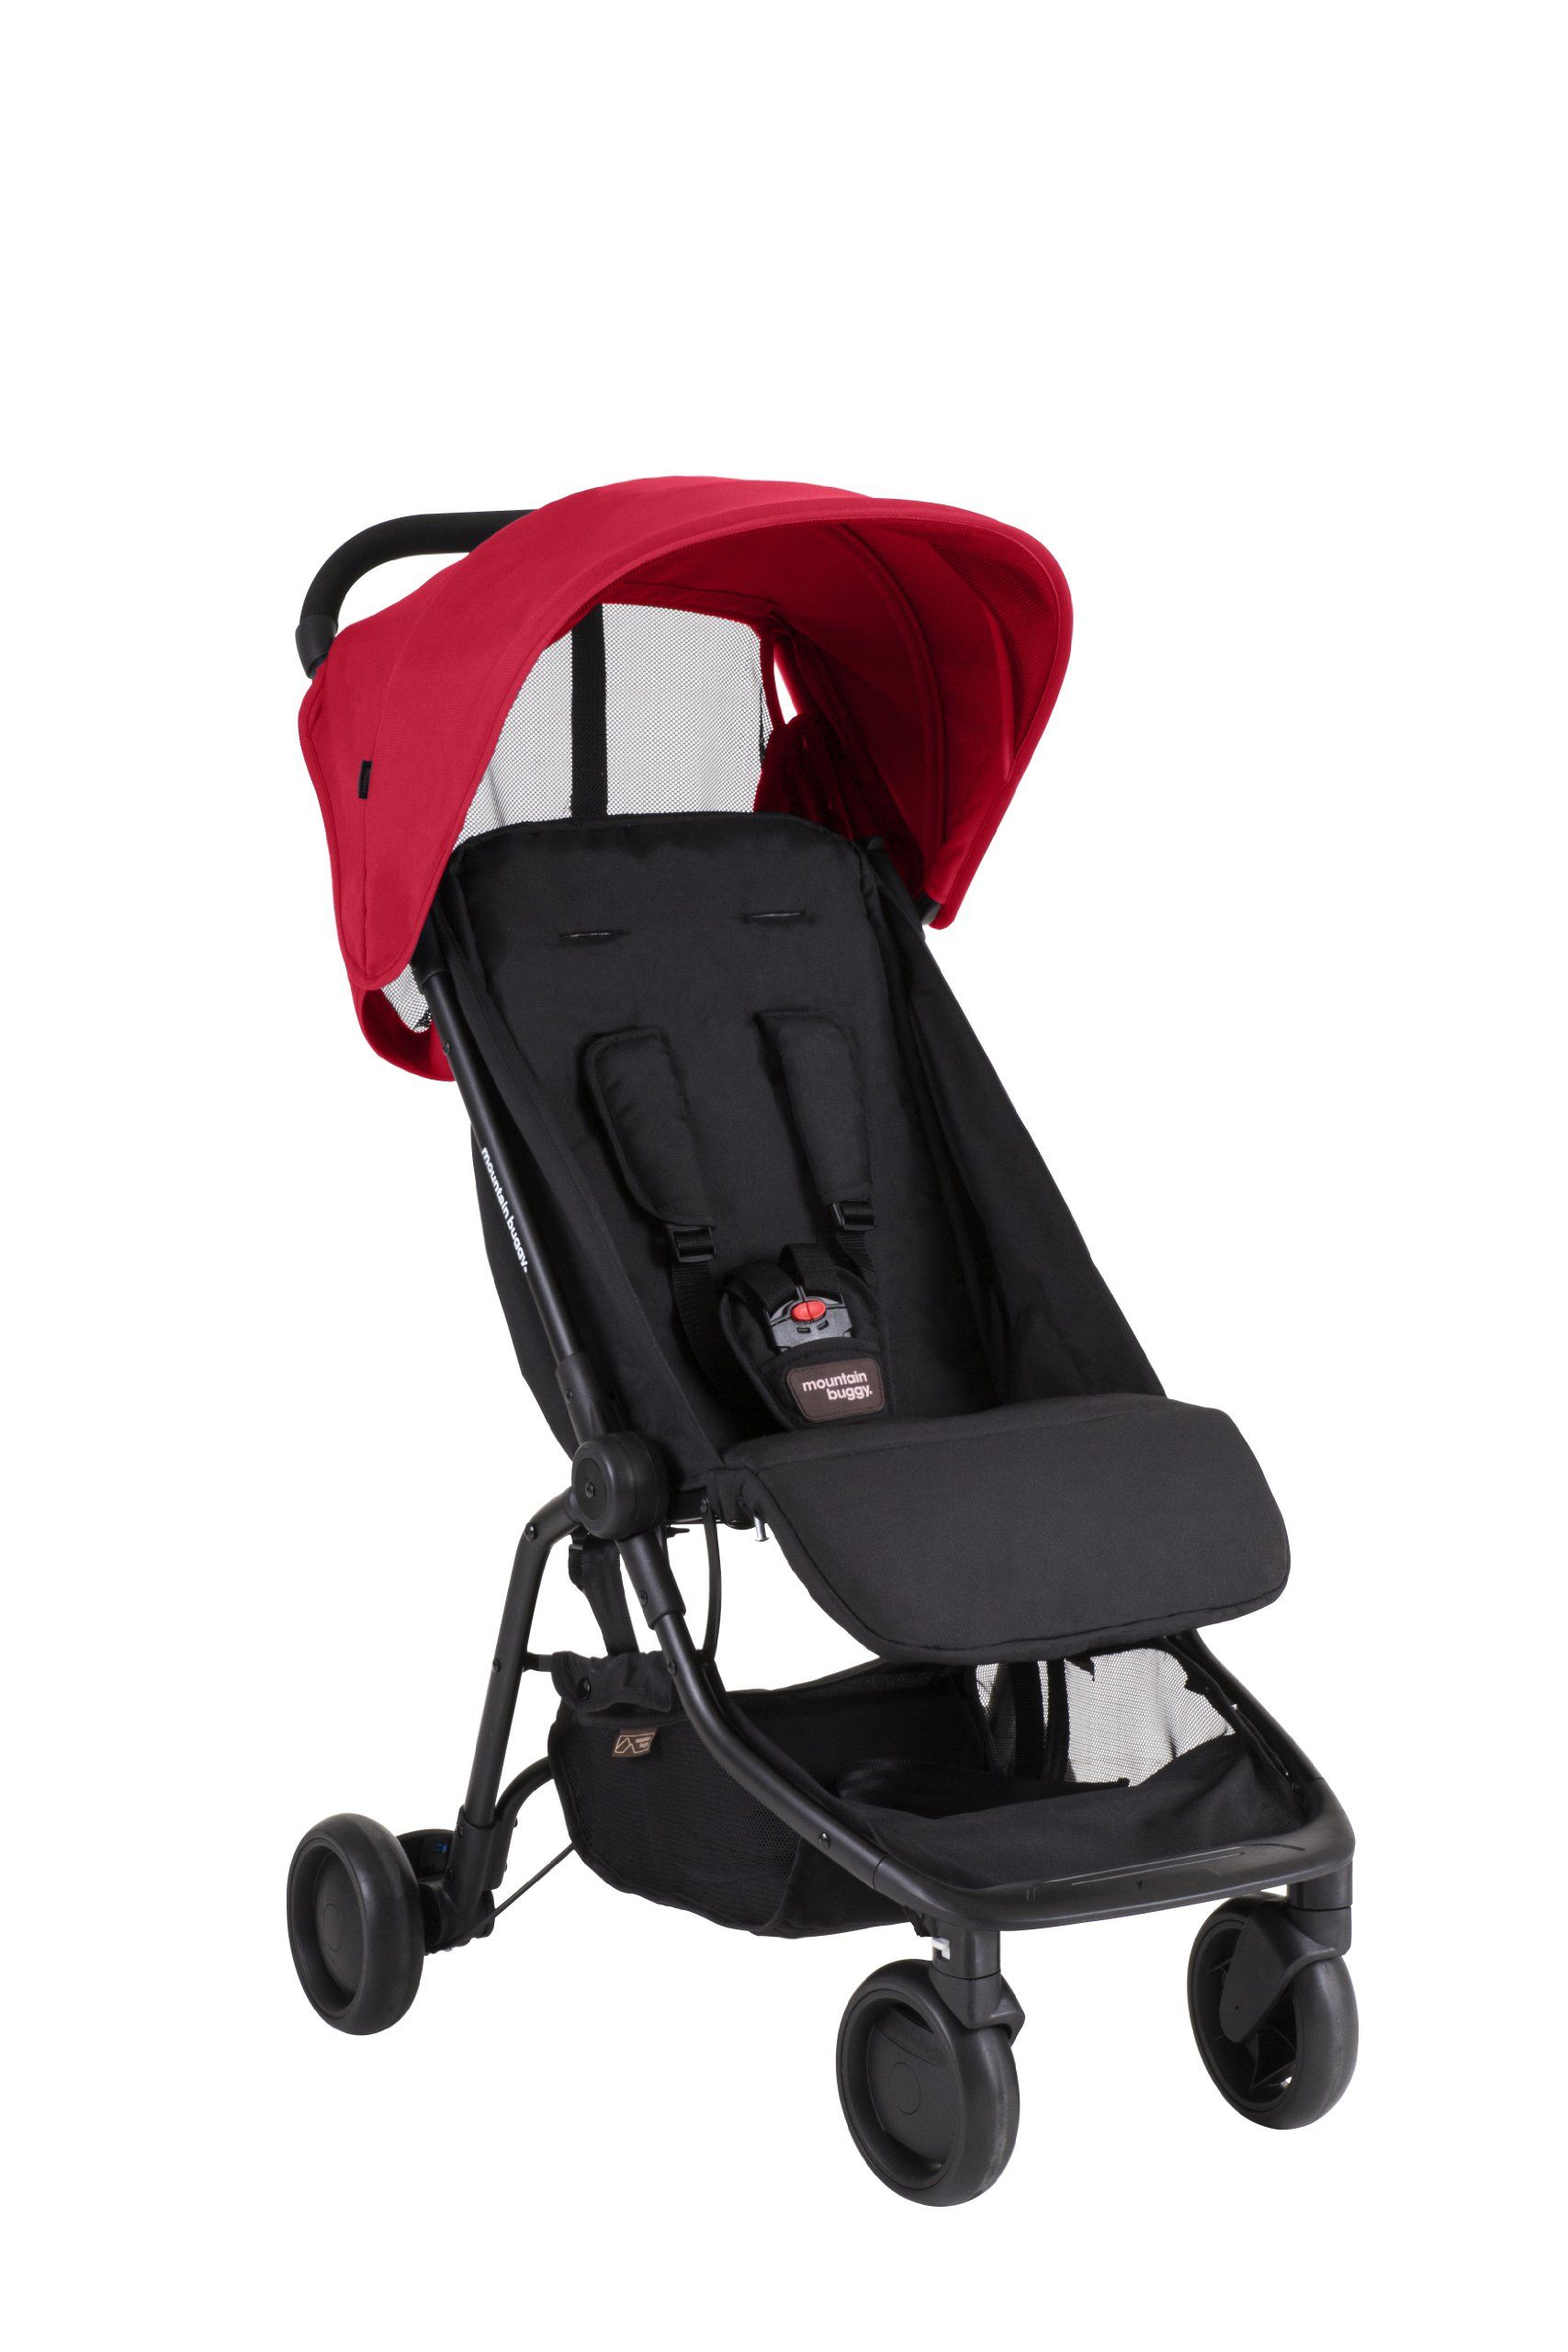 Mountain Buggy Nano Stroller, Ruby (With images